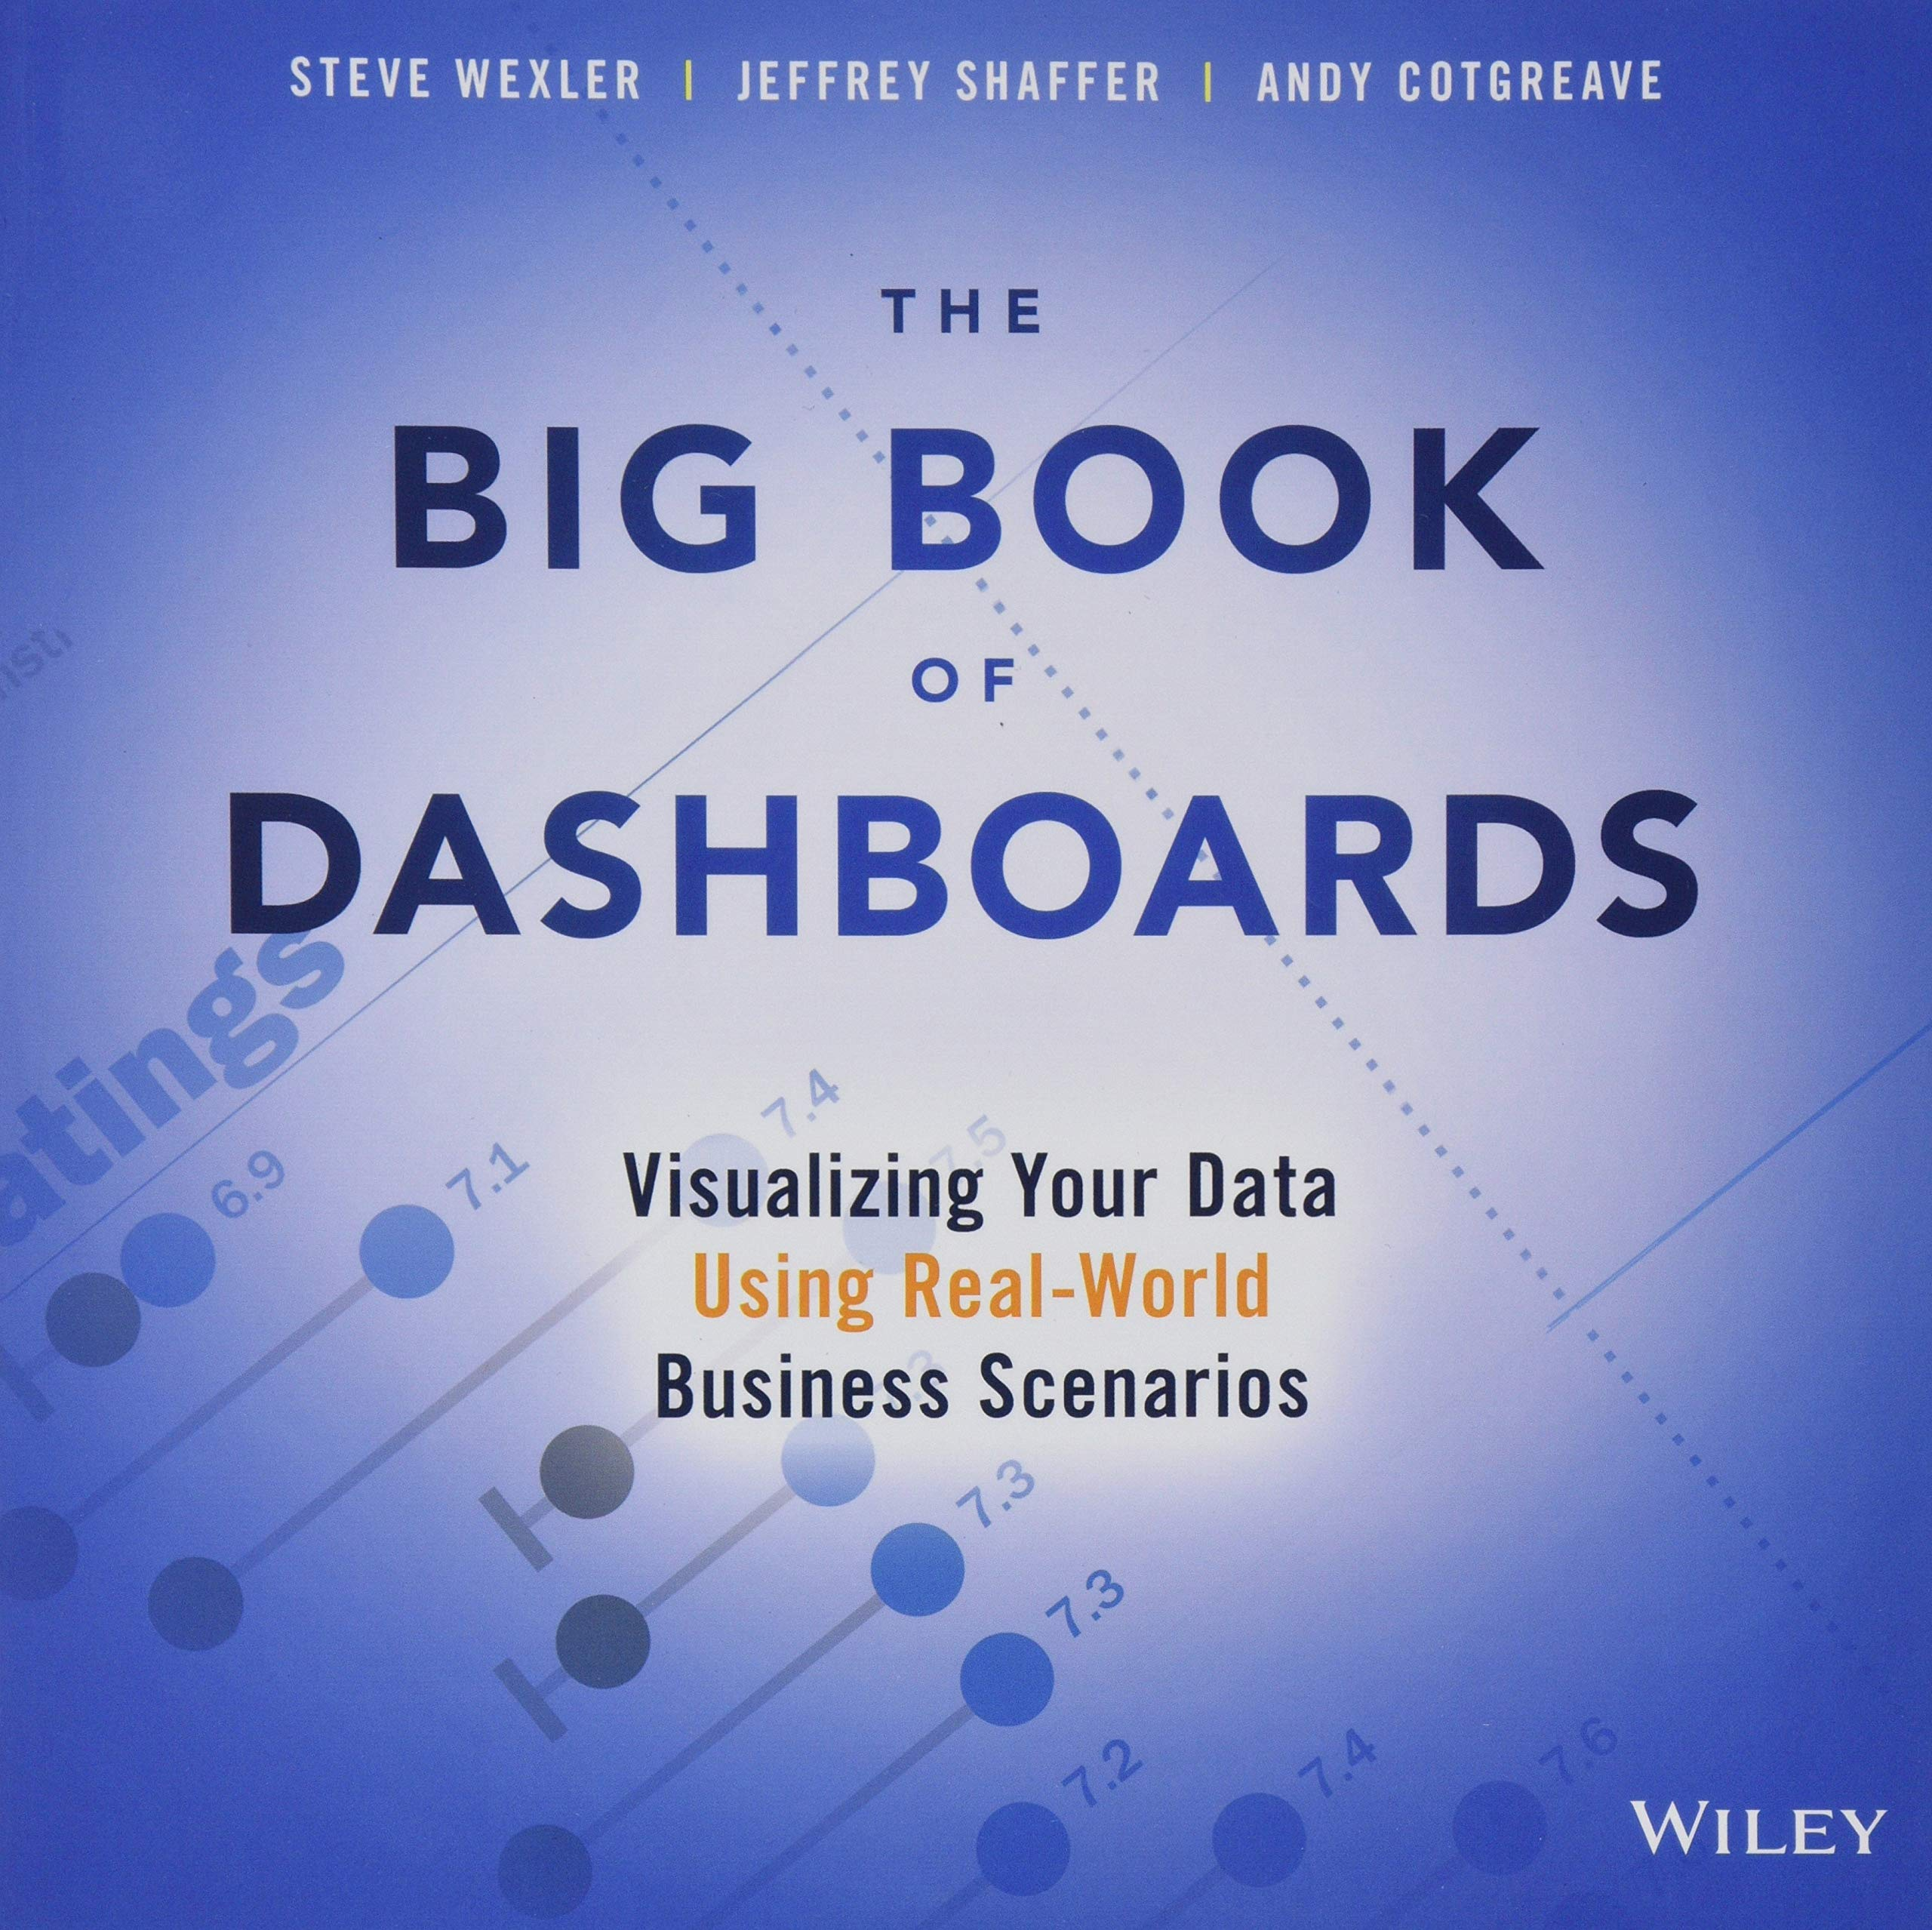 The Big Book of Dashboards: Visualizing Your Data Using Real